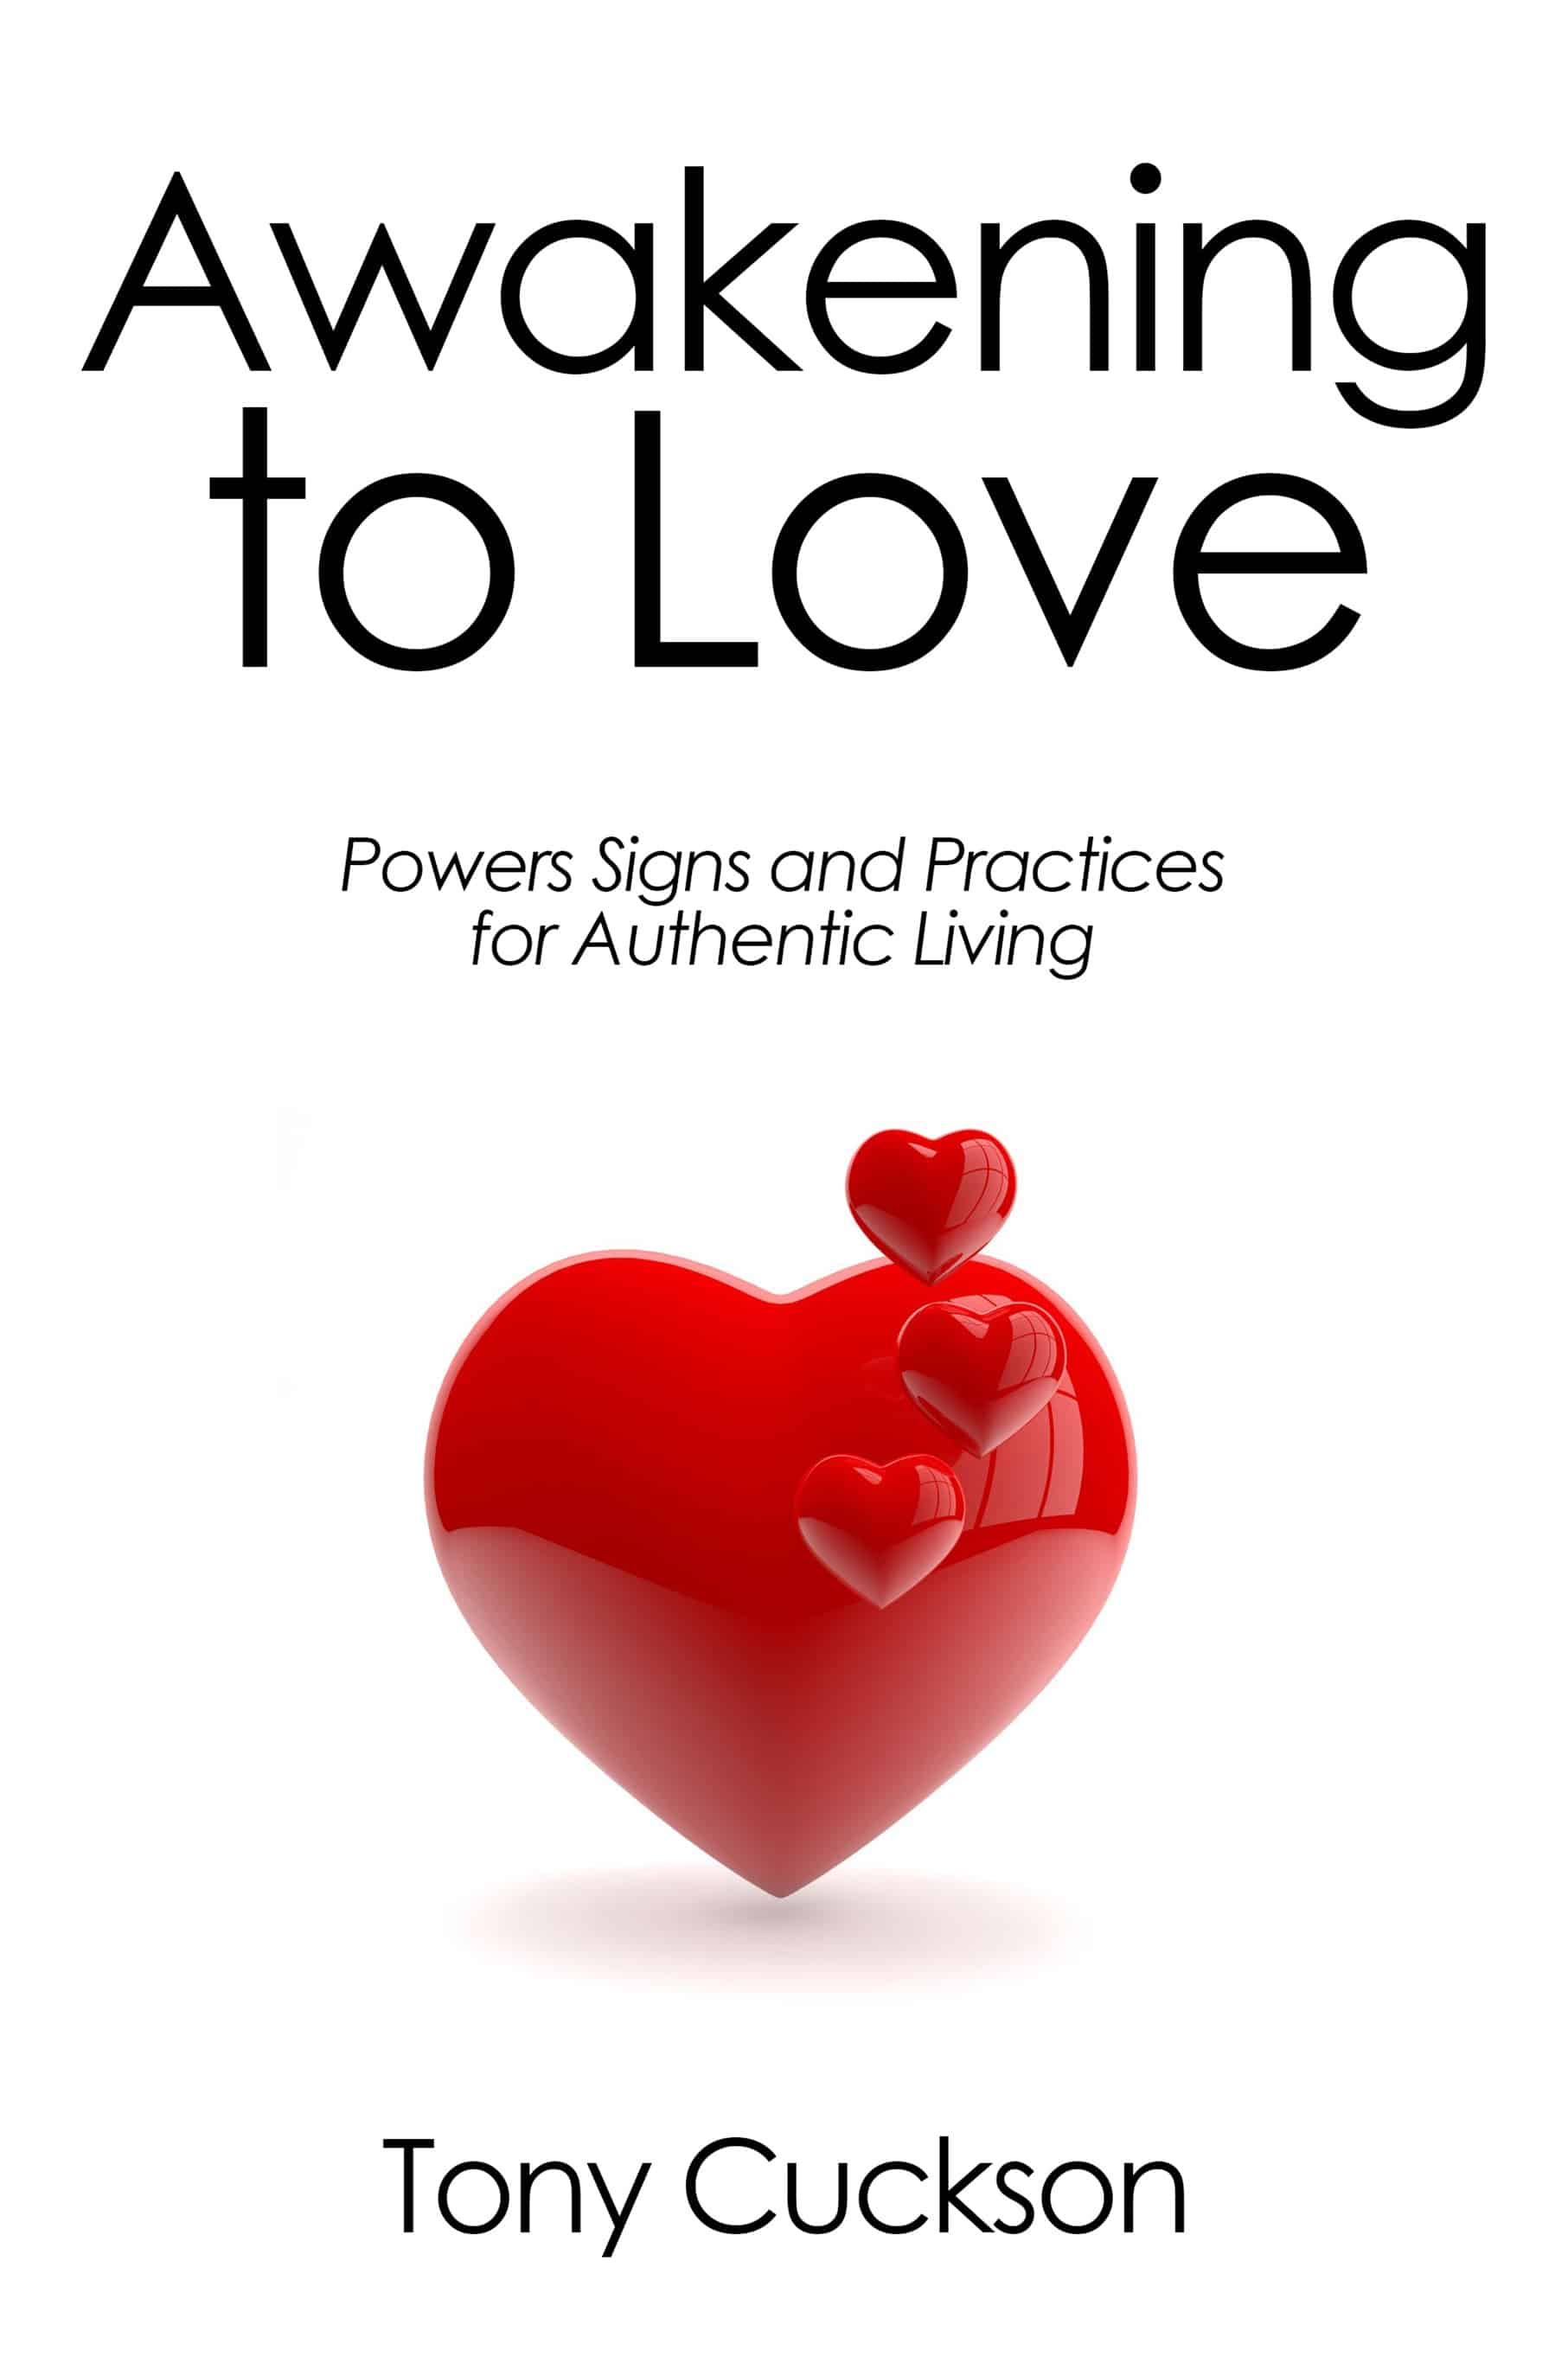 awakening to love book